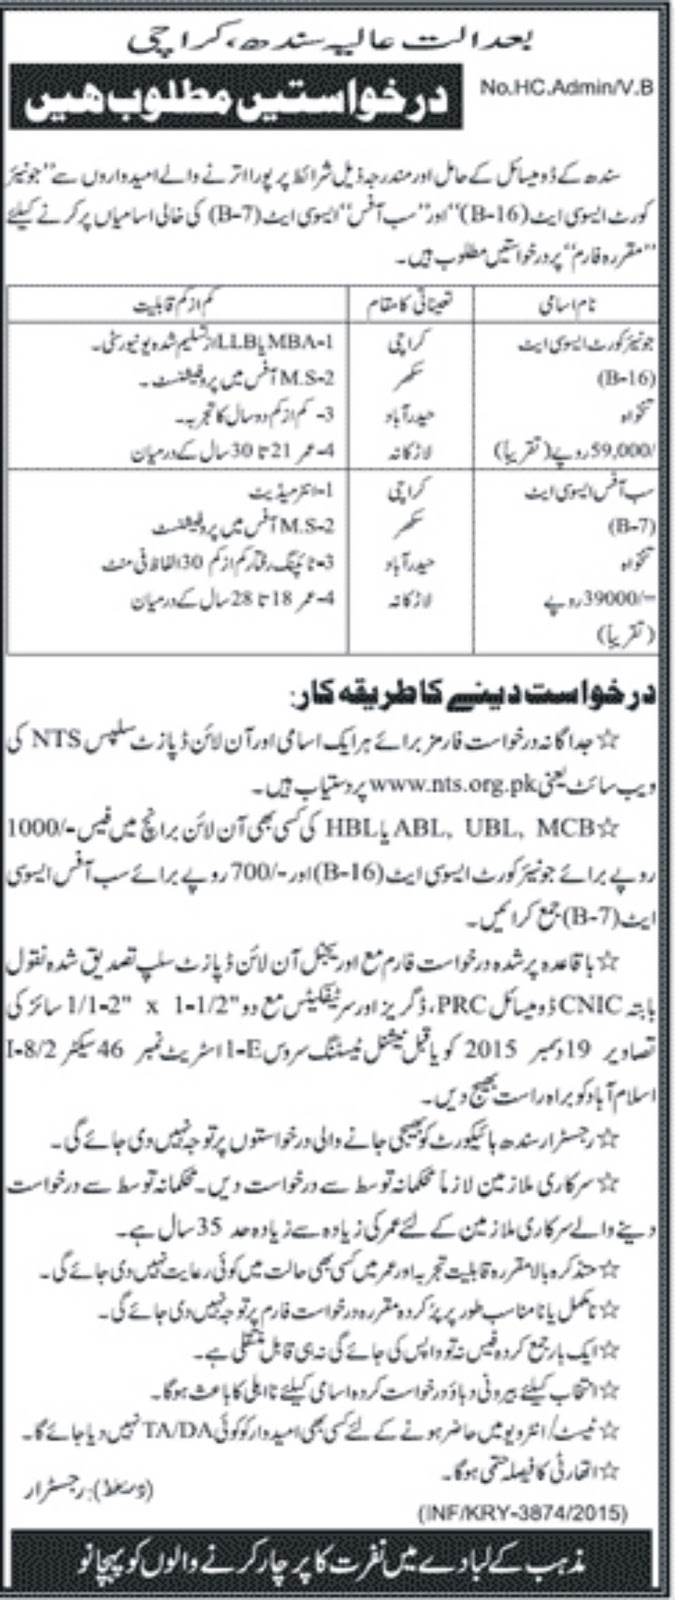 Court & Office associate Jobs in Sindh high Court Pakistan